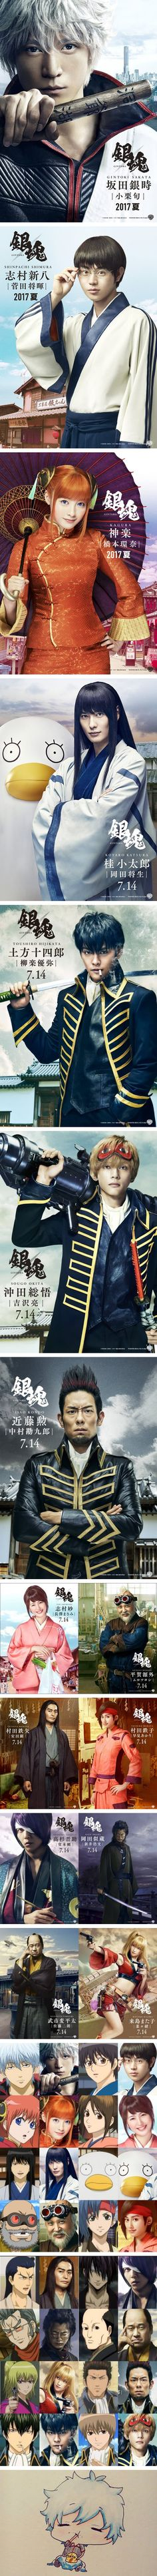 Live-Action Gintama Film Posters Reveal Main Cast in Costume